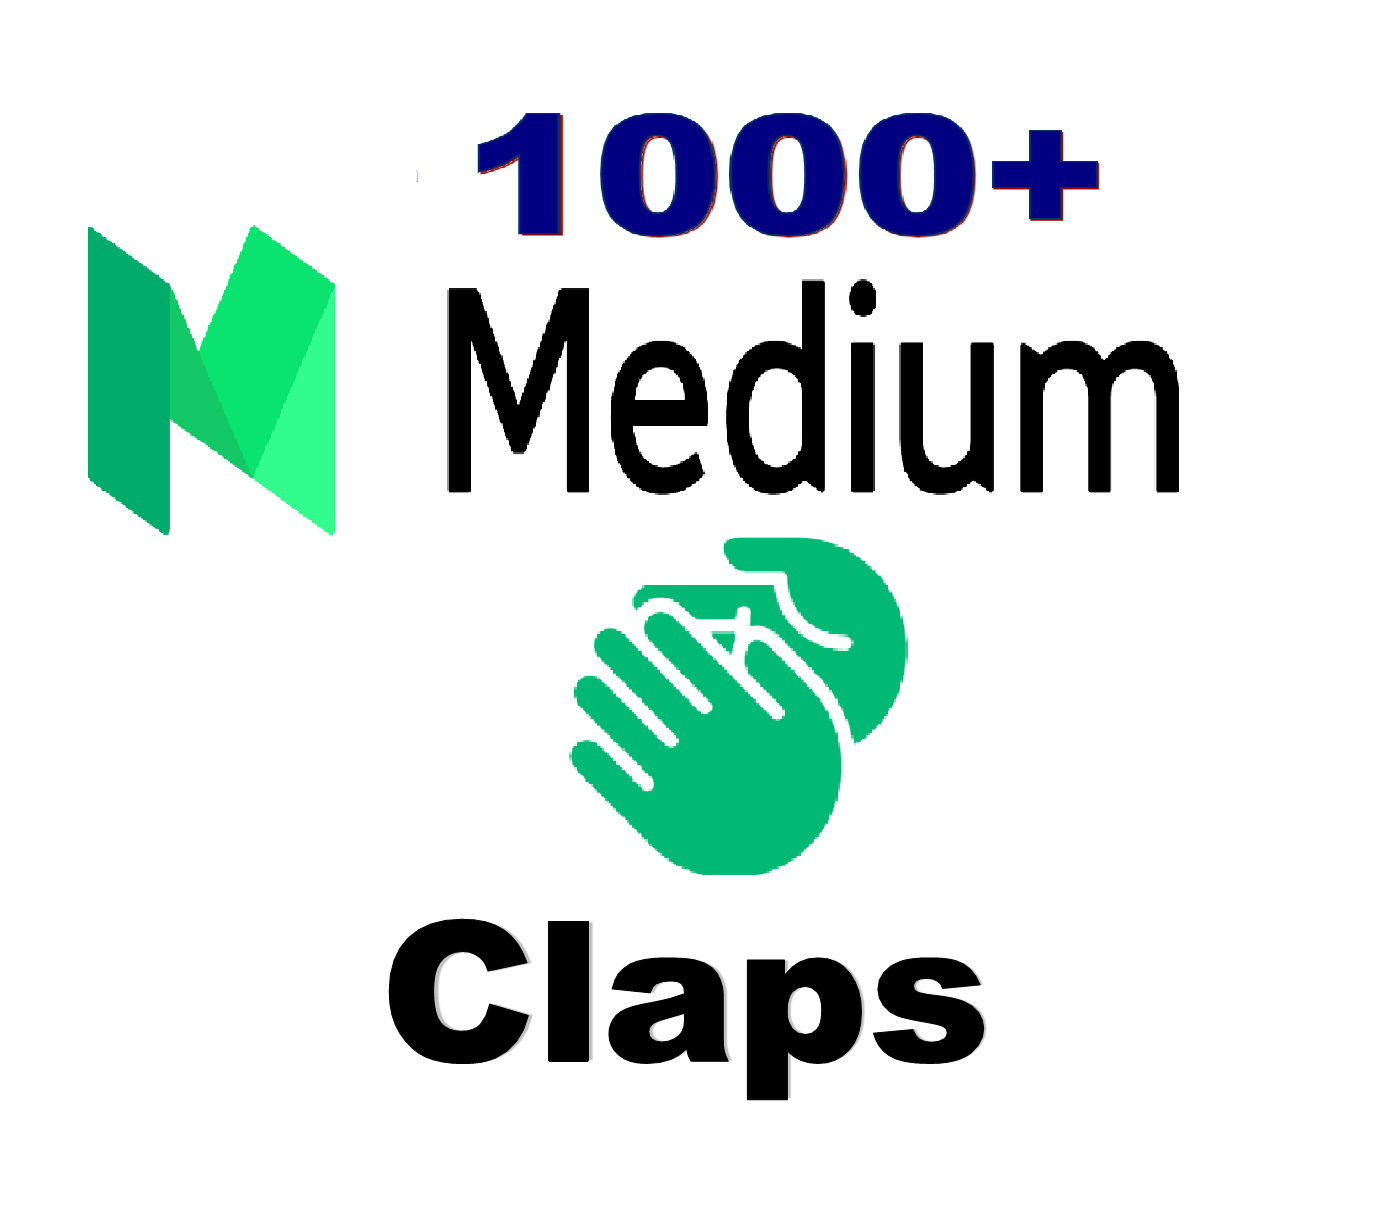 I Can Provide 1000 Medium Claps To Your Post